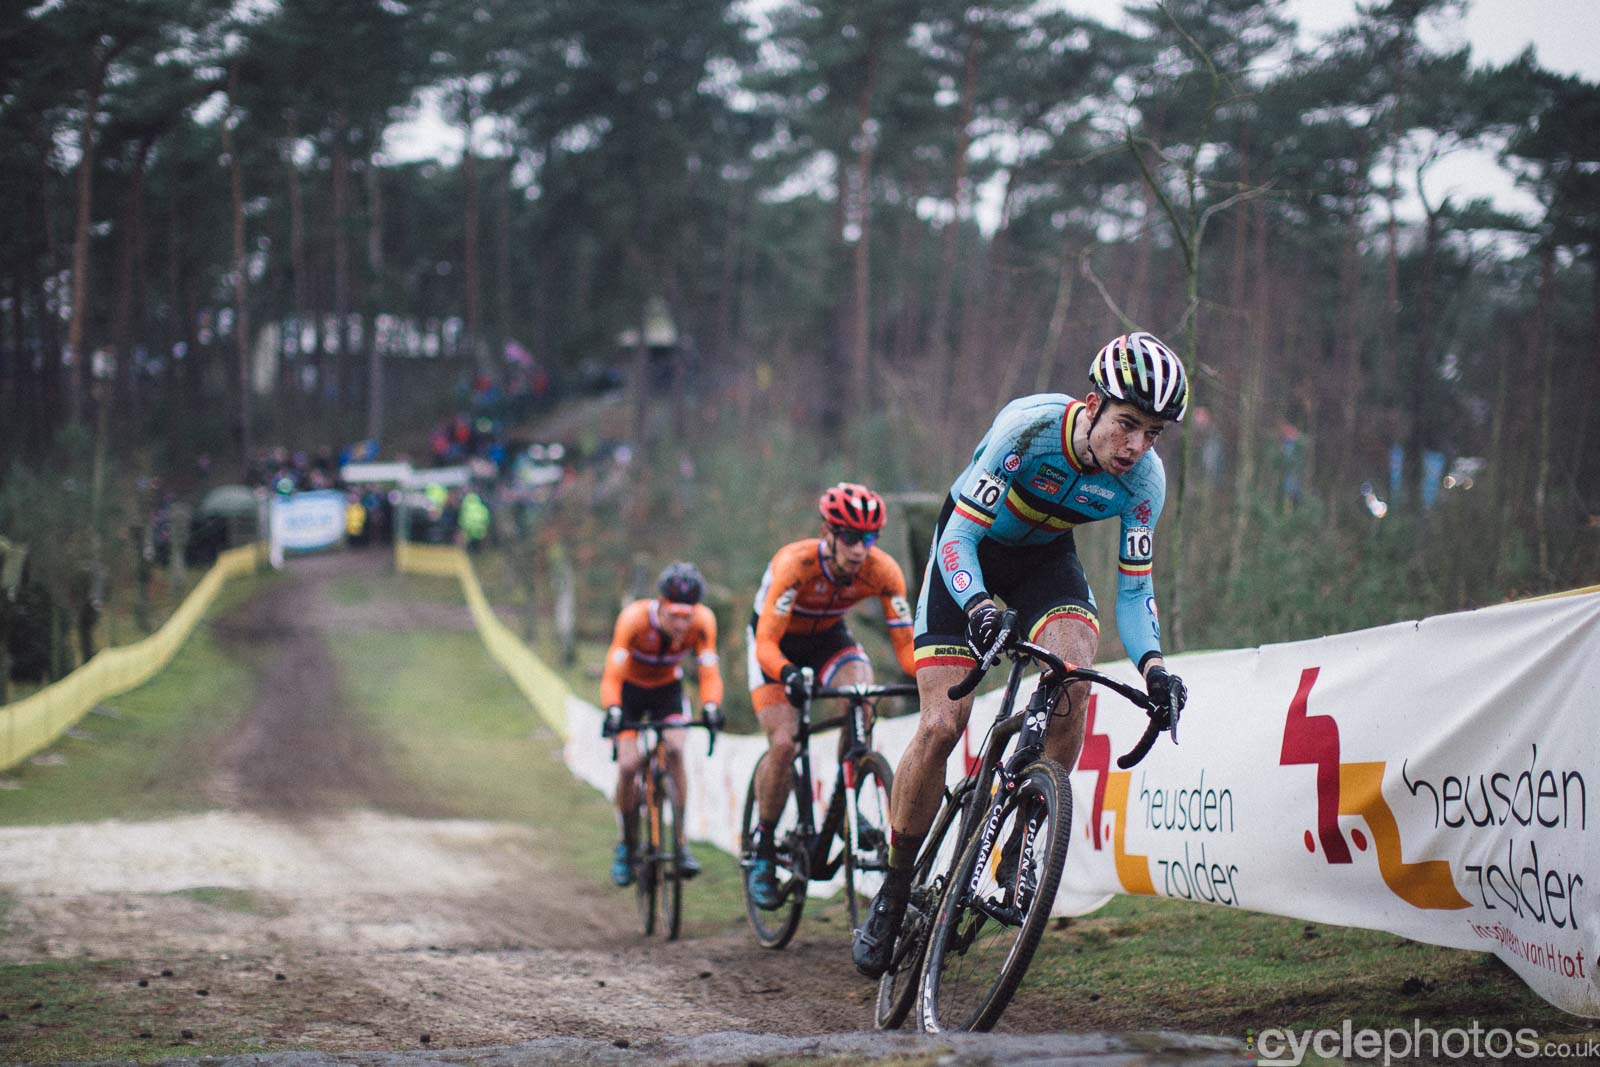 2016-cyclephotos-cyclocross-world-championships-zolder-151112-wout-van-aert